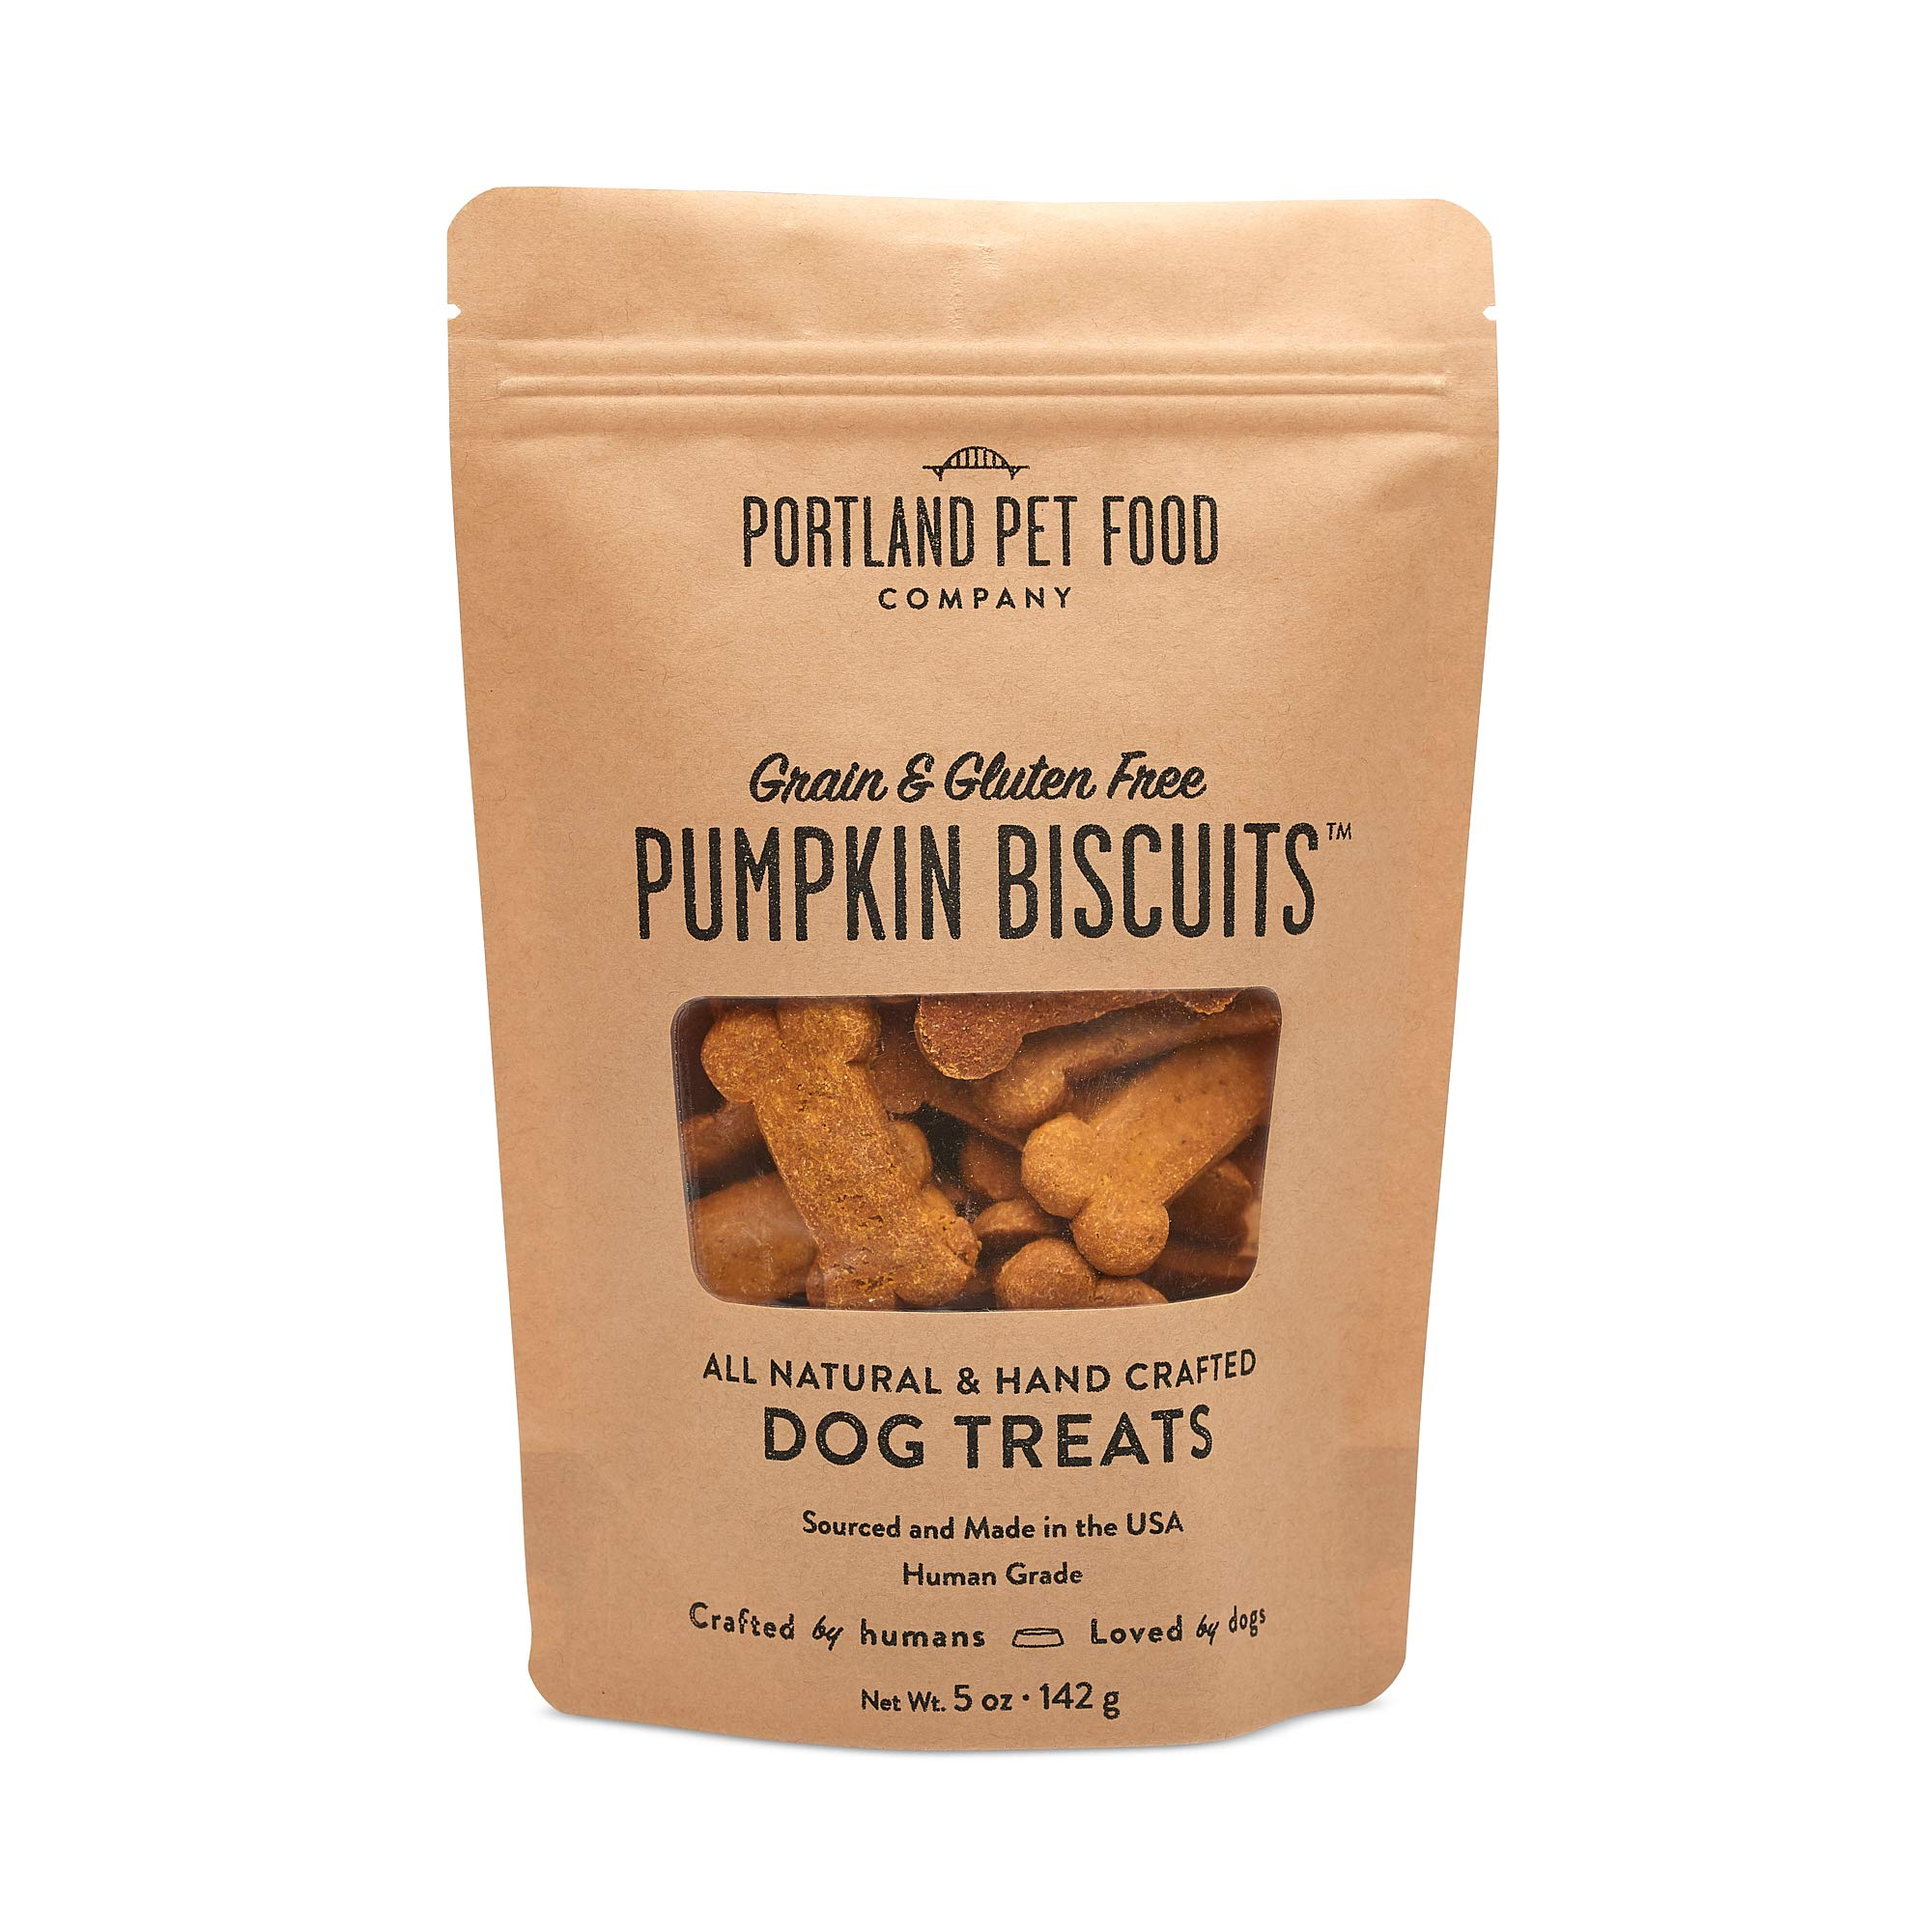 Crafted by Humans Loved by Dogs Portland Pet Food Company Pumpkin Biscuit Dog Treats, 5oz by Crafted by Humans Loved by Dogs